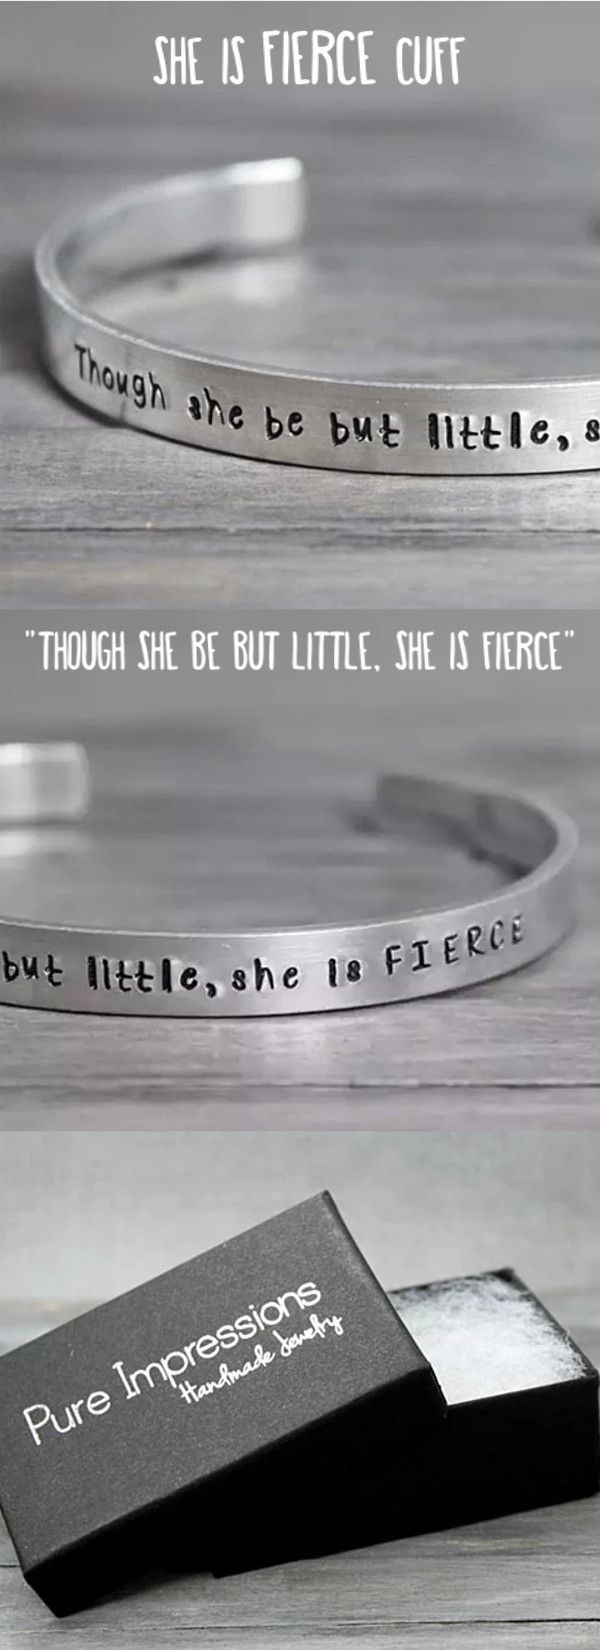 Though she be but little, she is FIERCE. This Shakespeare quote cuff is the perfect gift! Pure Impressions creates its hand stamped jewelry and inspiration jewelry one at a time.